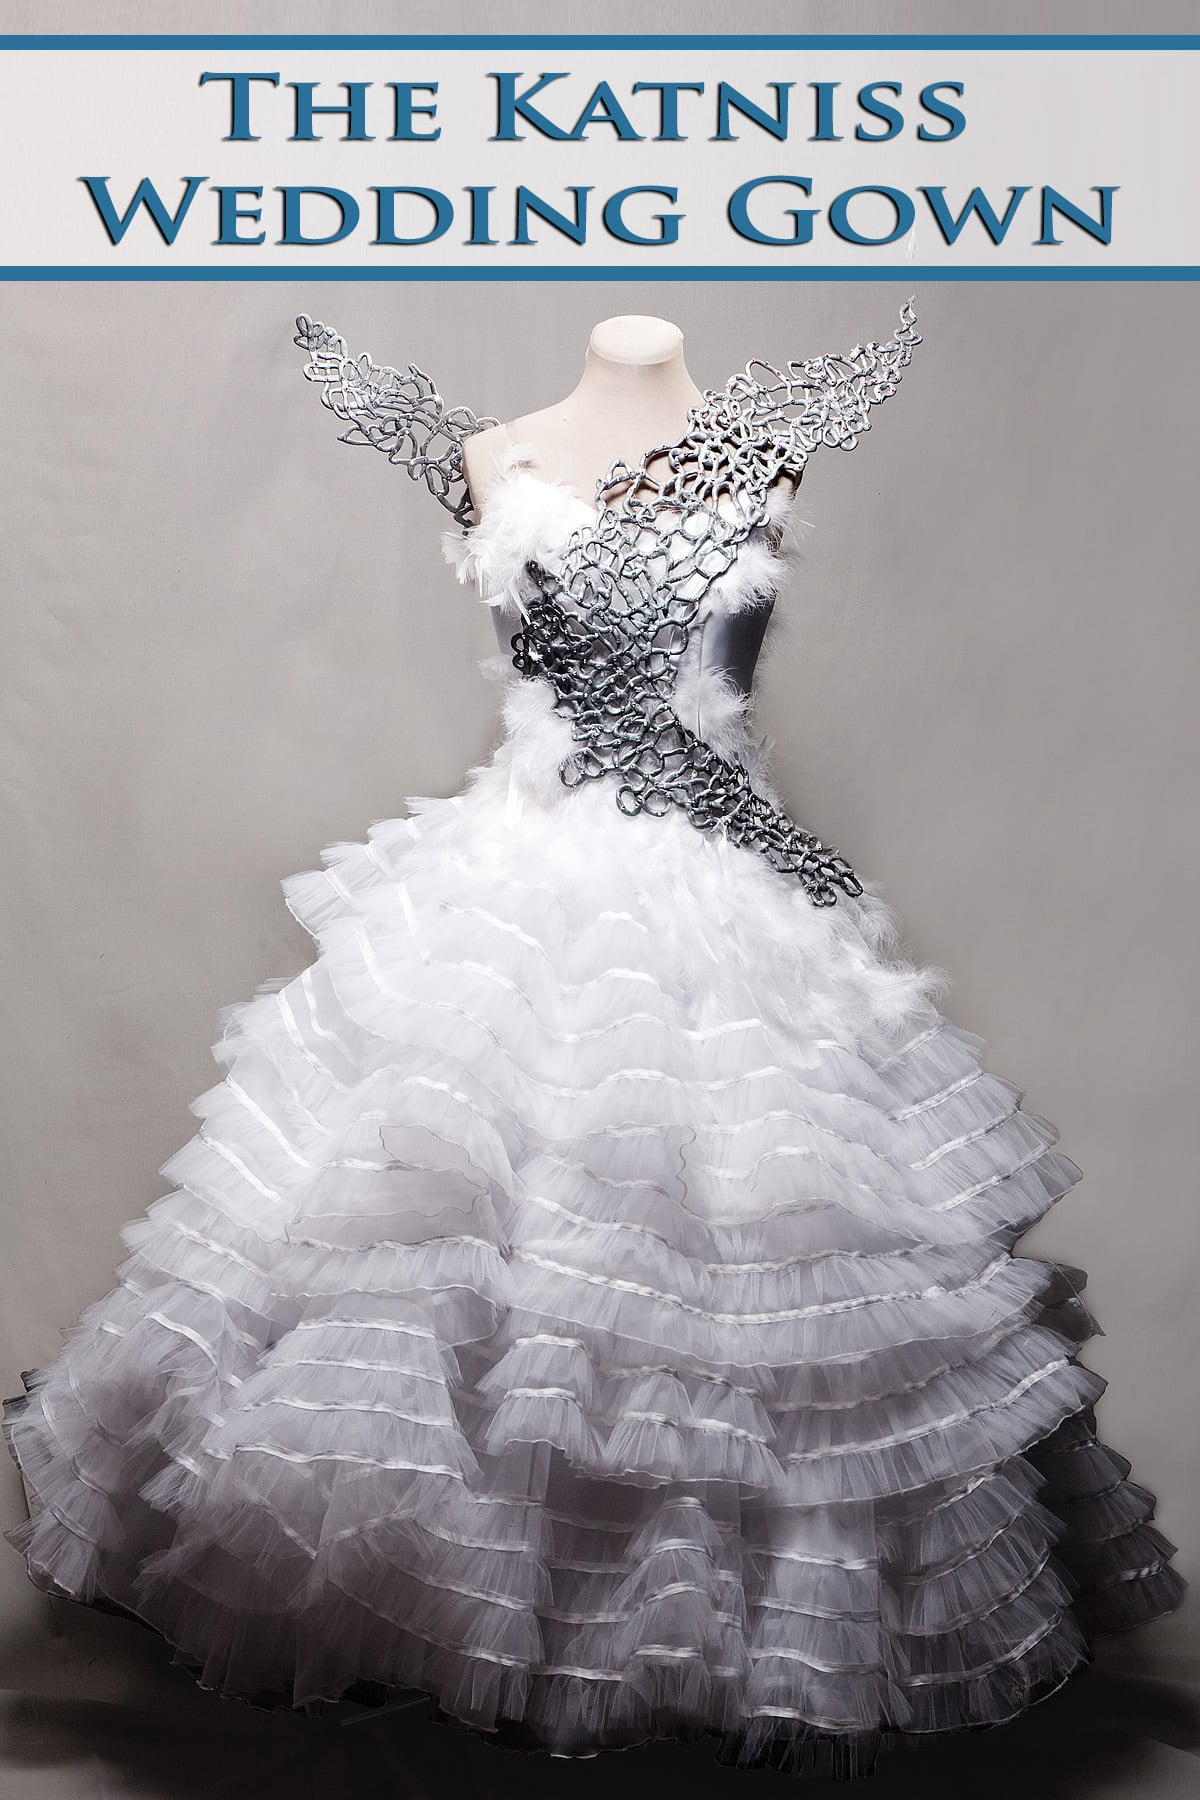 """An elaborate wedding down with silver wings, on a dress form.  Blue text overlay says """"The Katniss Wedding Gown""""."""